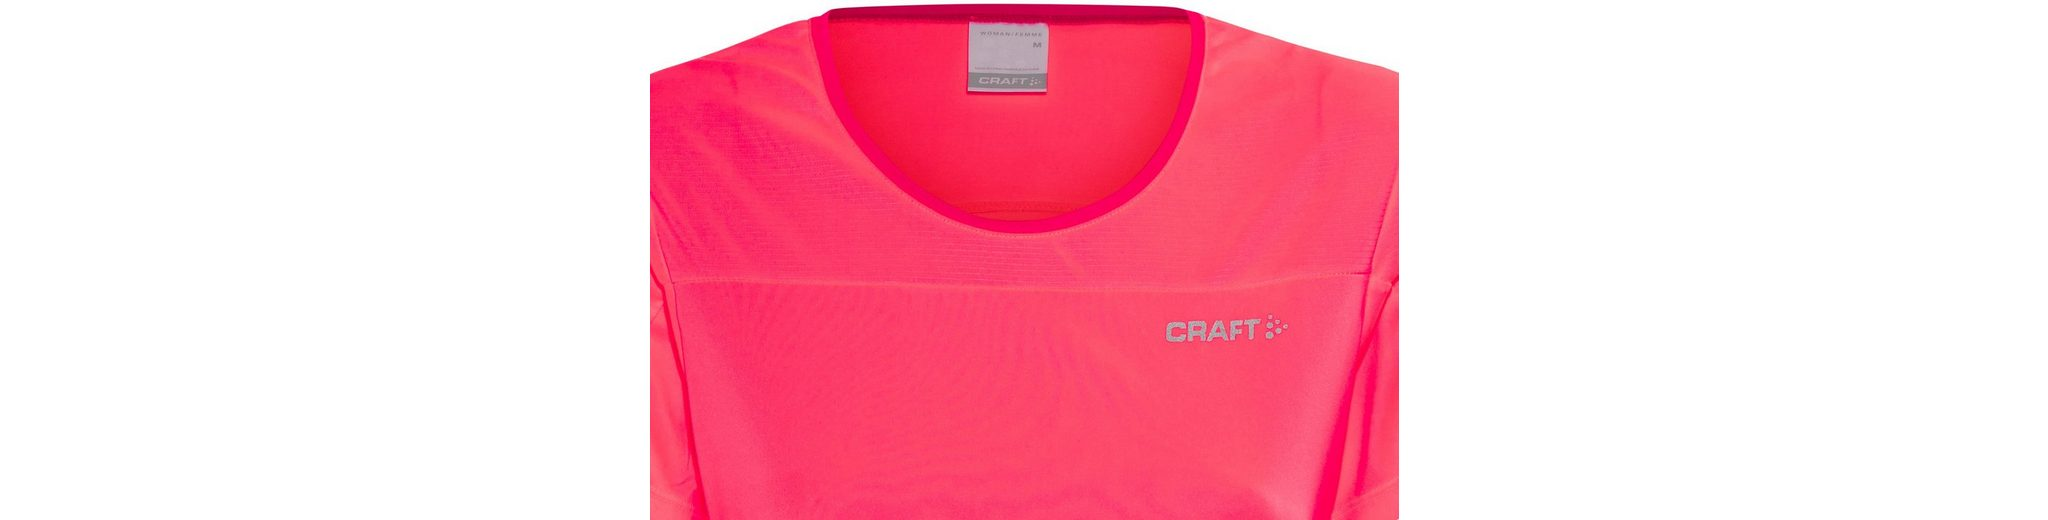 2 Craft T T Craft Women Shirt Shortsleeve Radiate Shirt No Shirt qa0qwScx